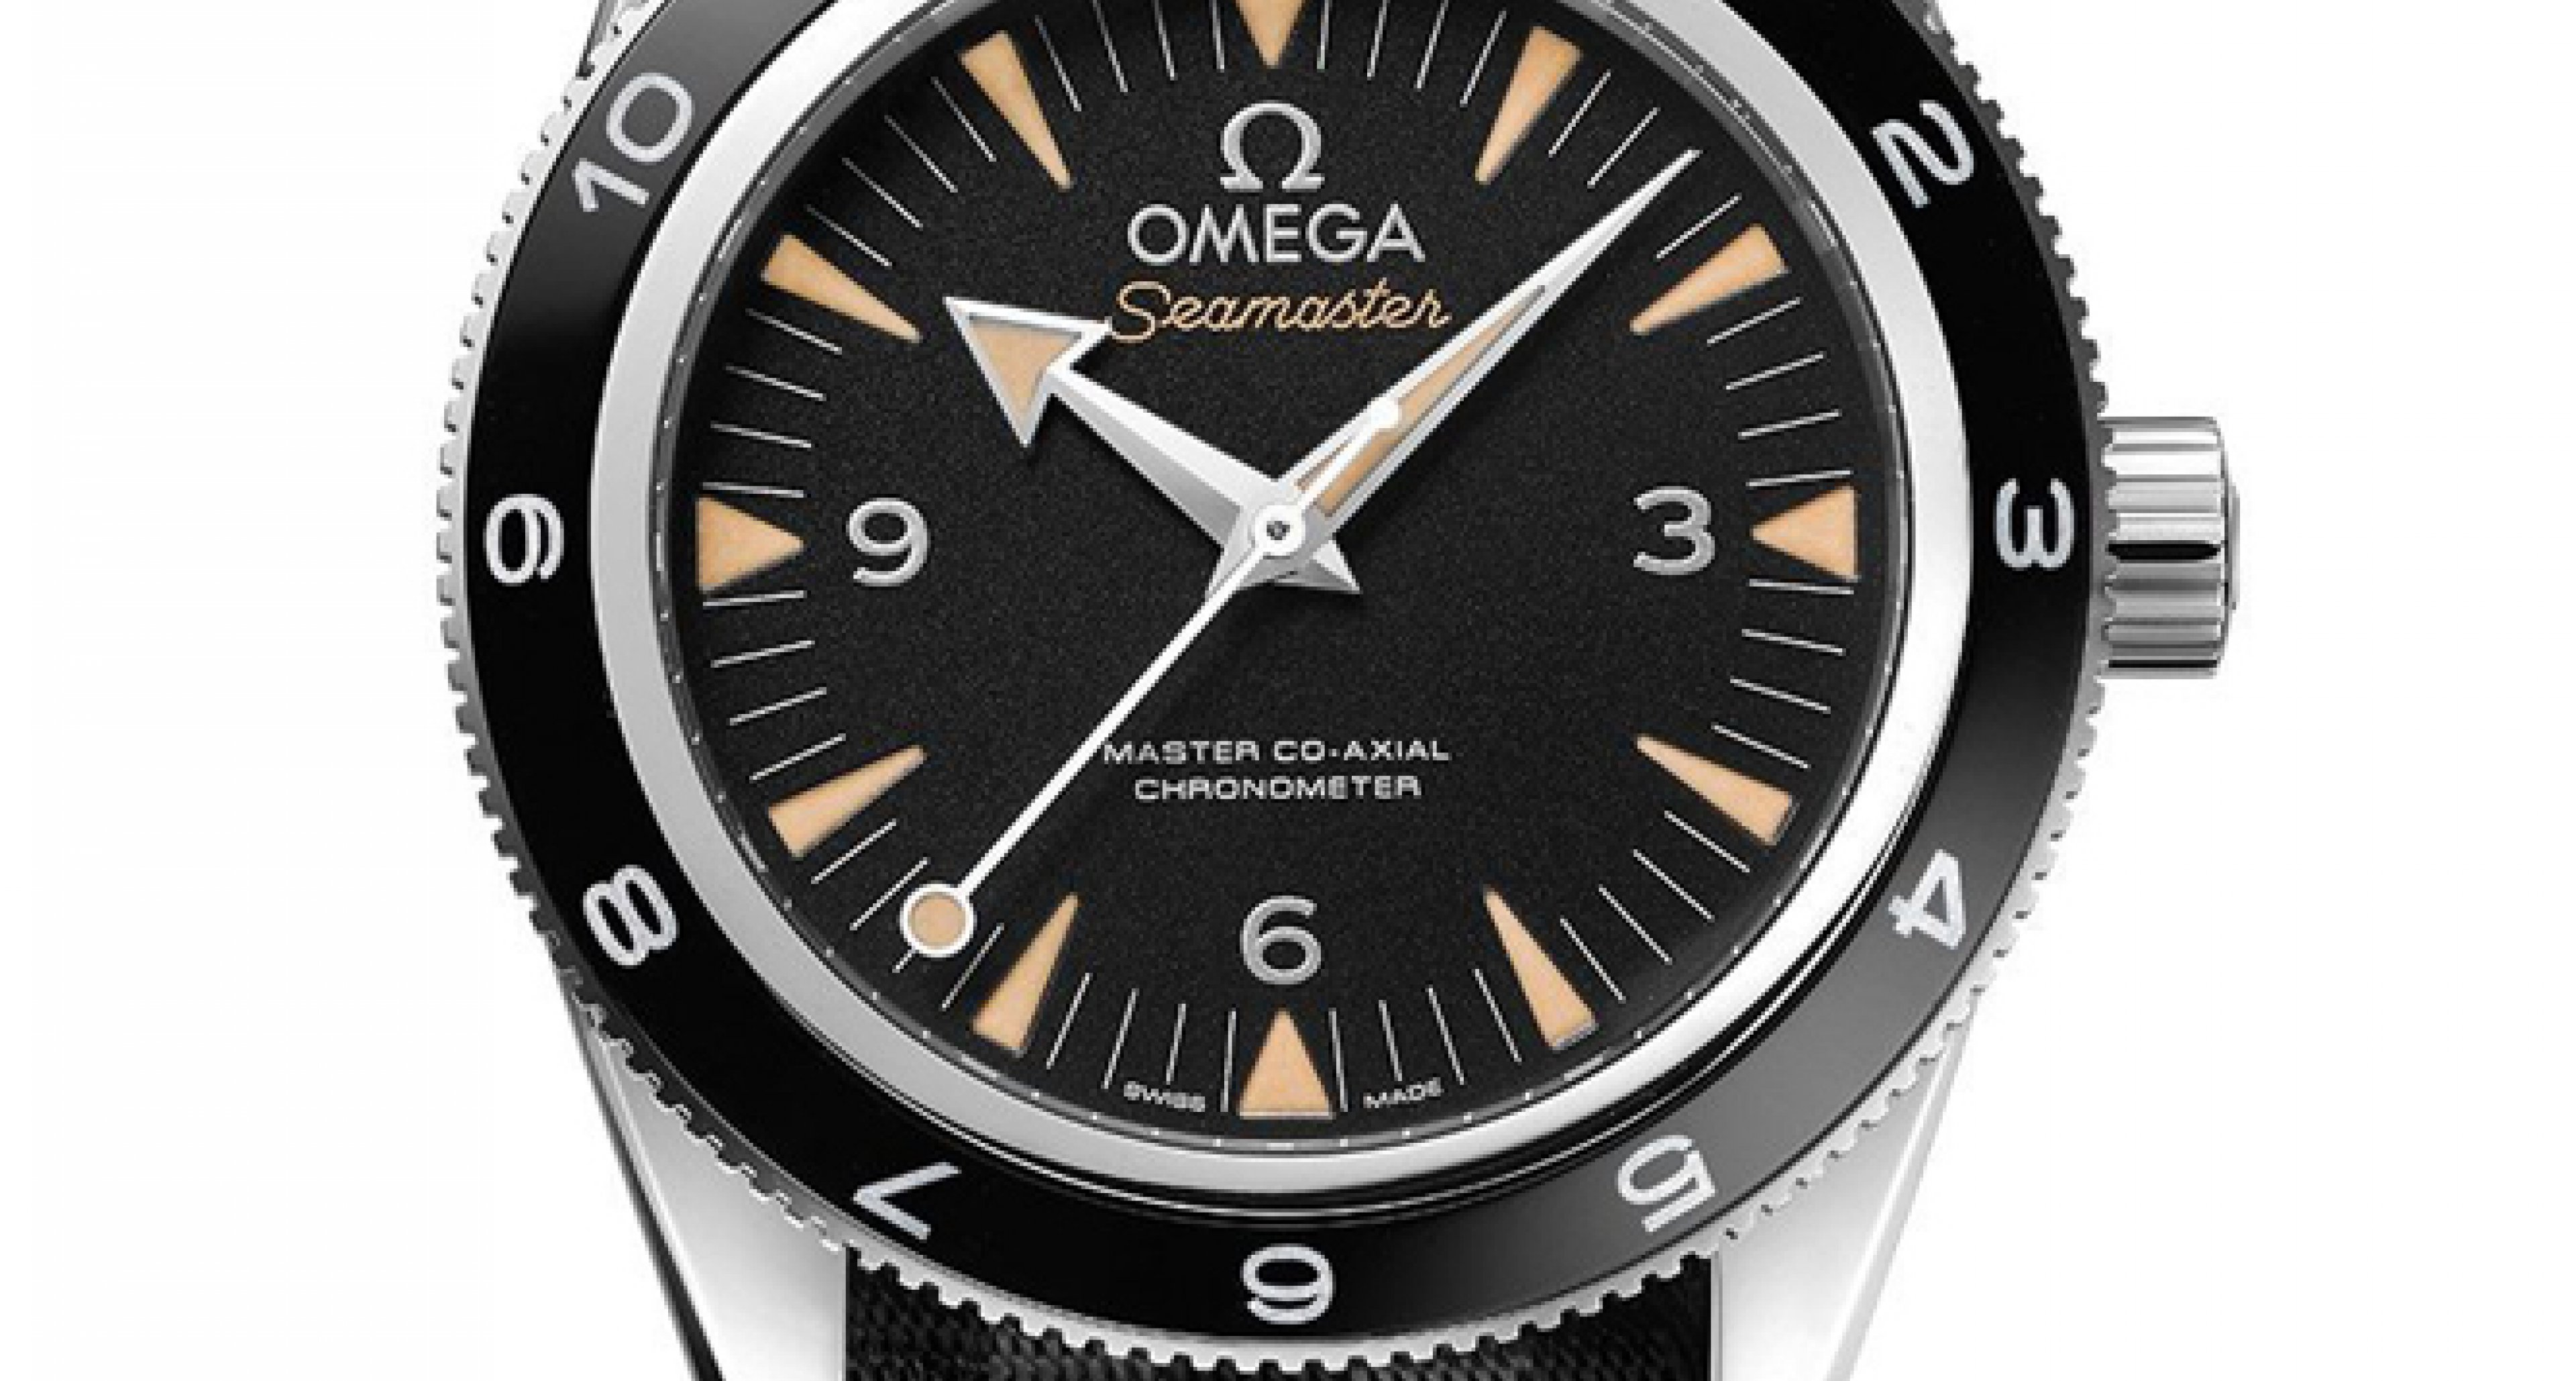 Omega Seamaster 300 Spectre Limited Edition For Sale thum ...